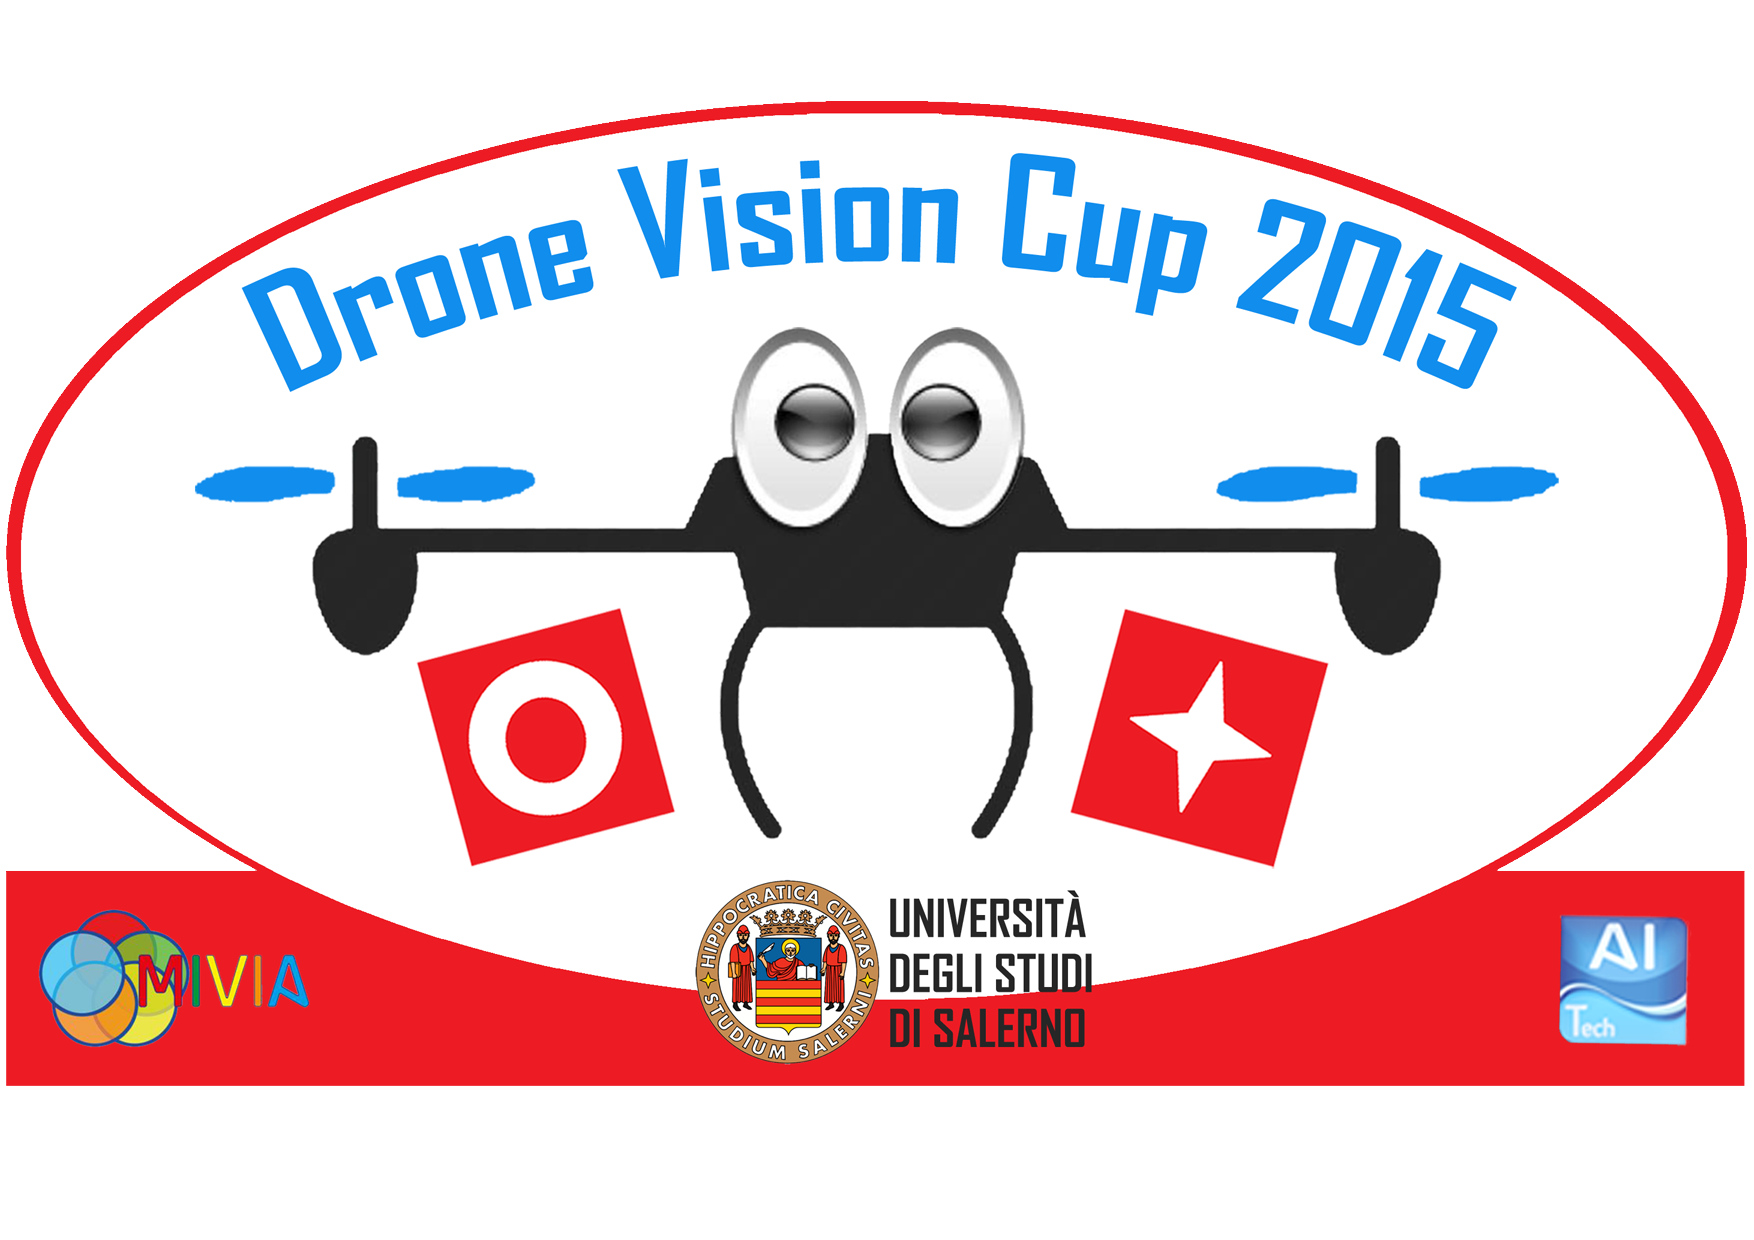 Drone Vision Cup 2015